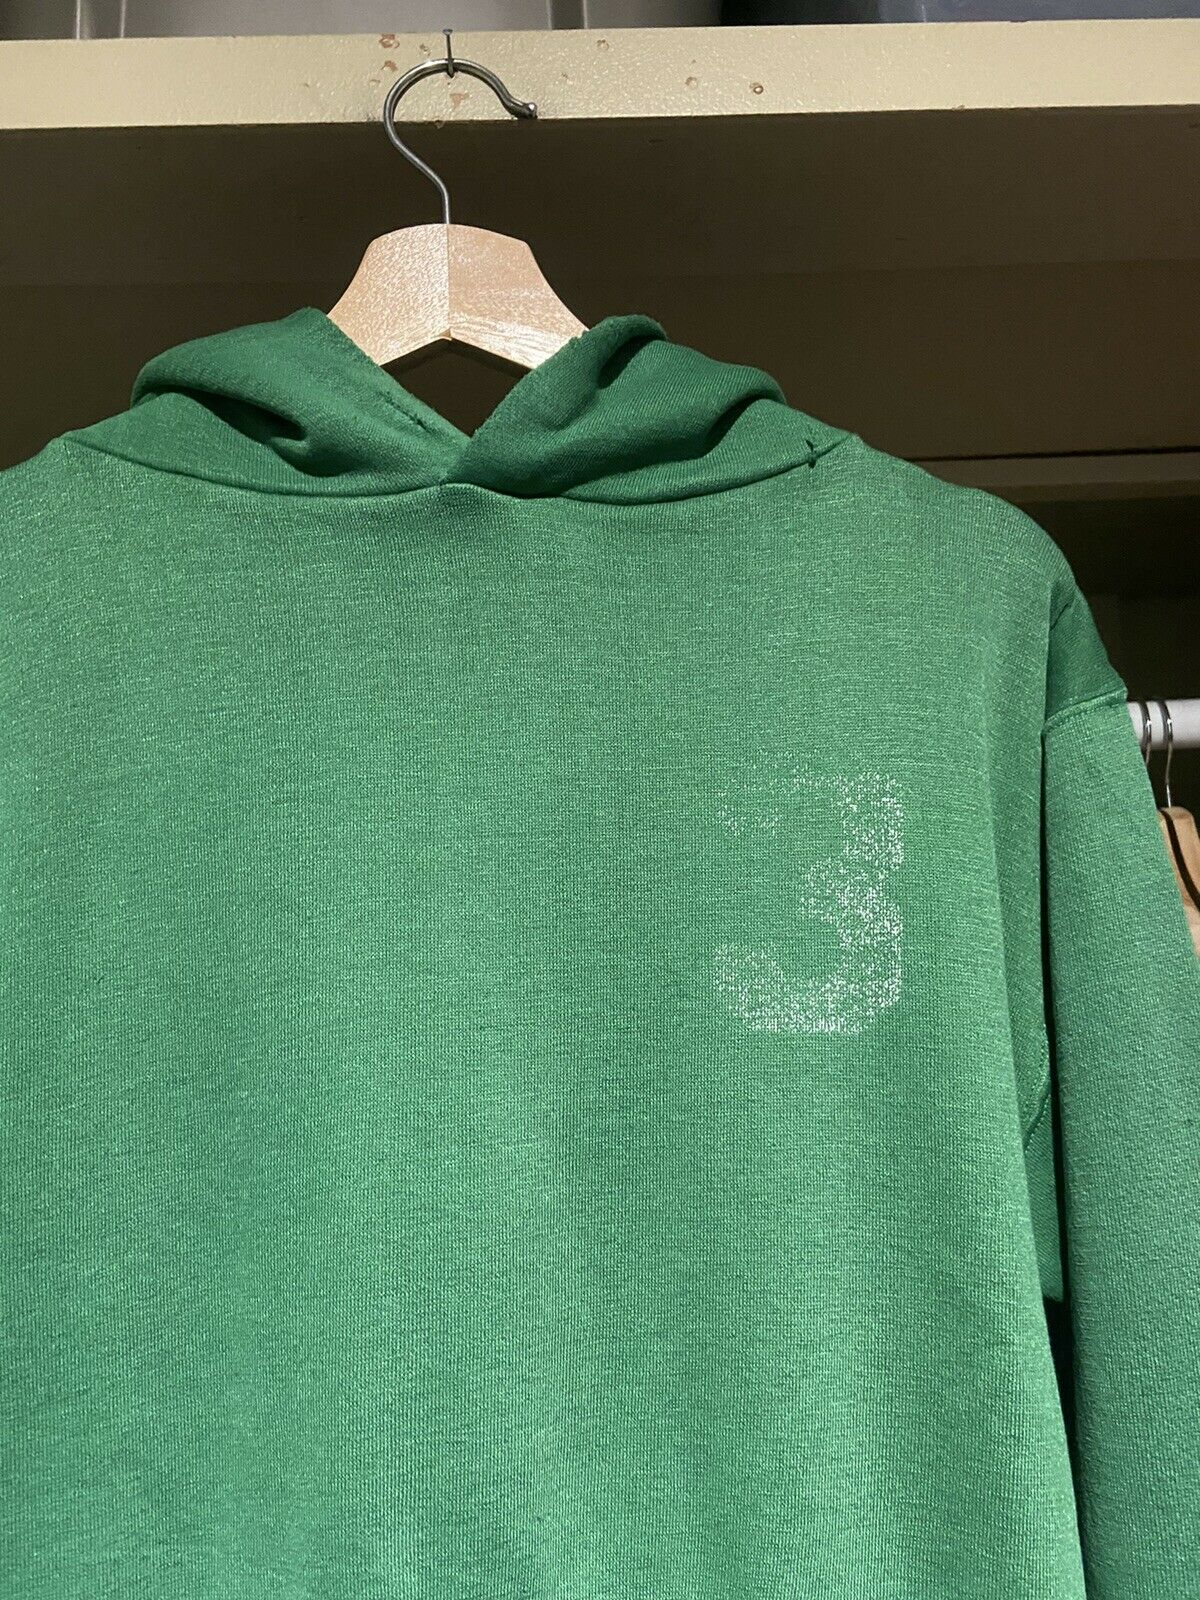 Vintage 70s Russell Athletic Green Pullover Hoodi… - image 2